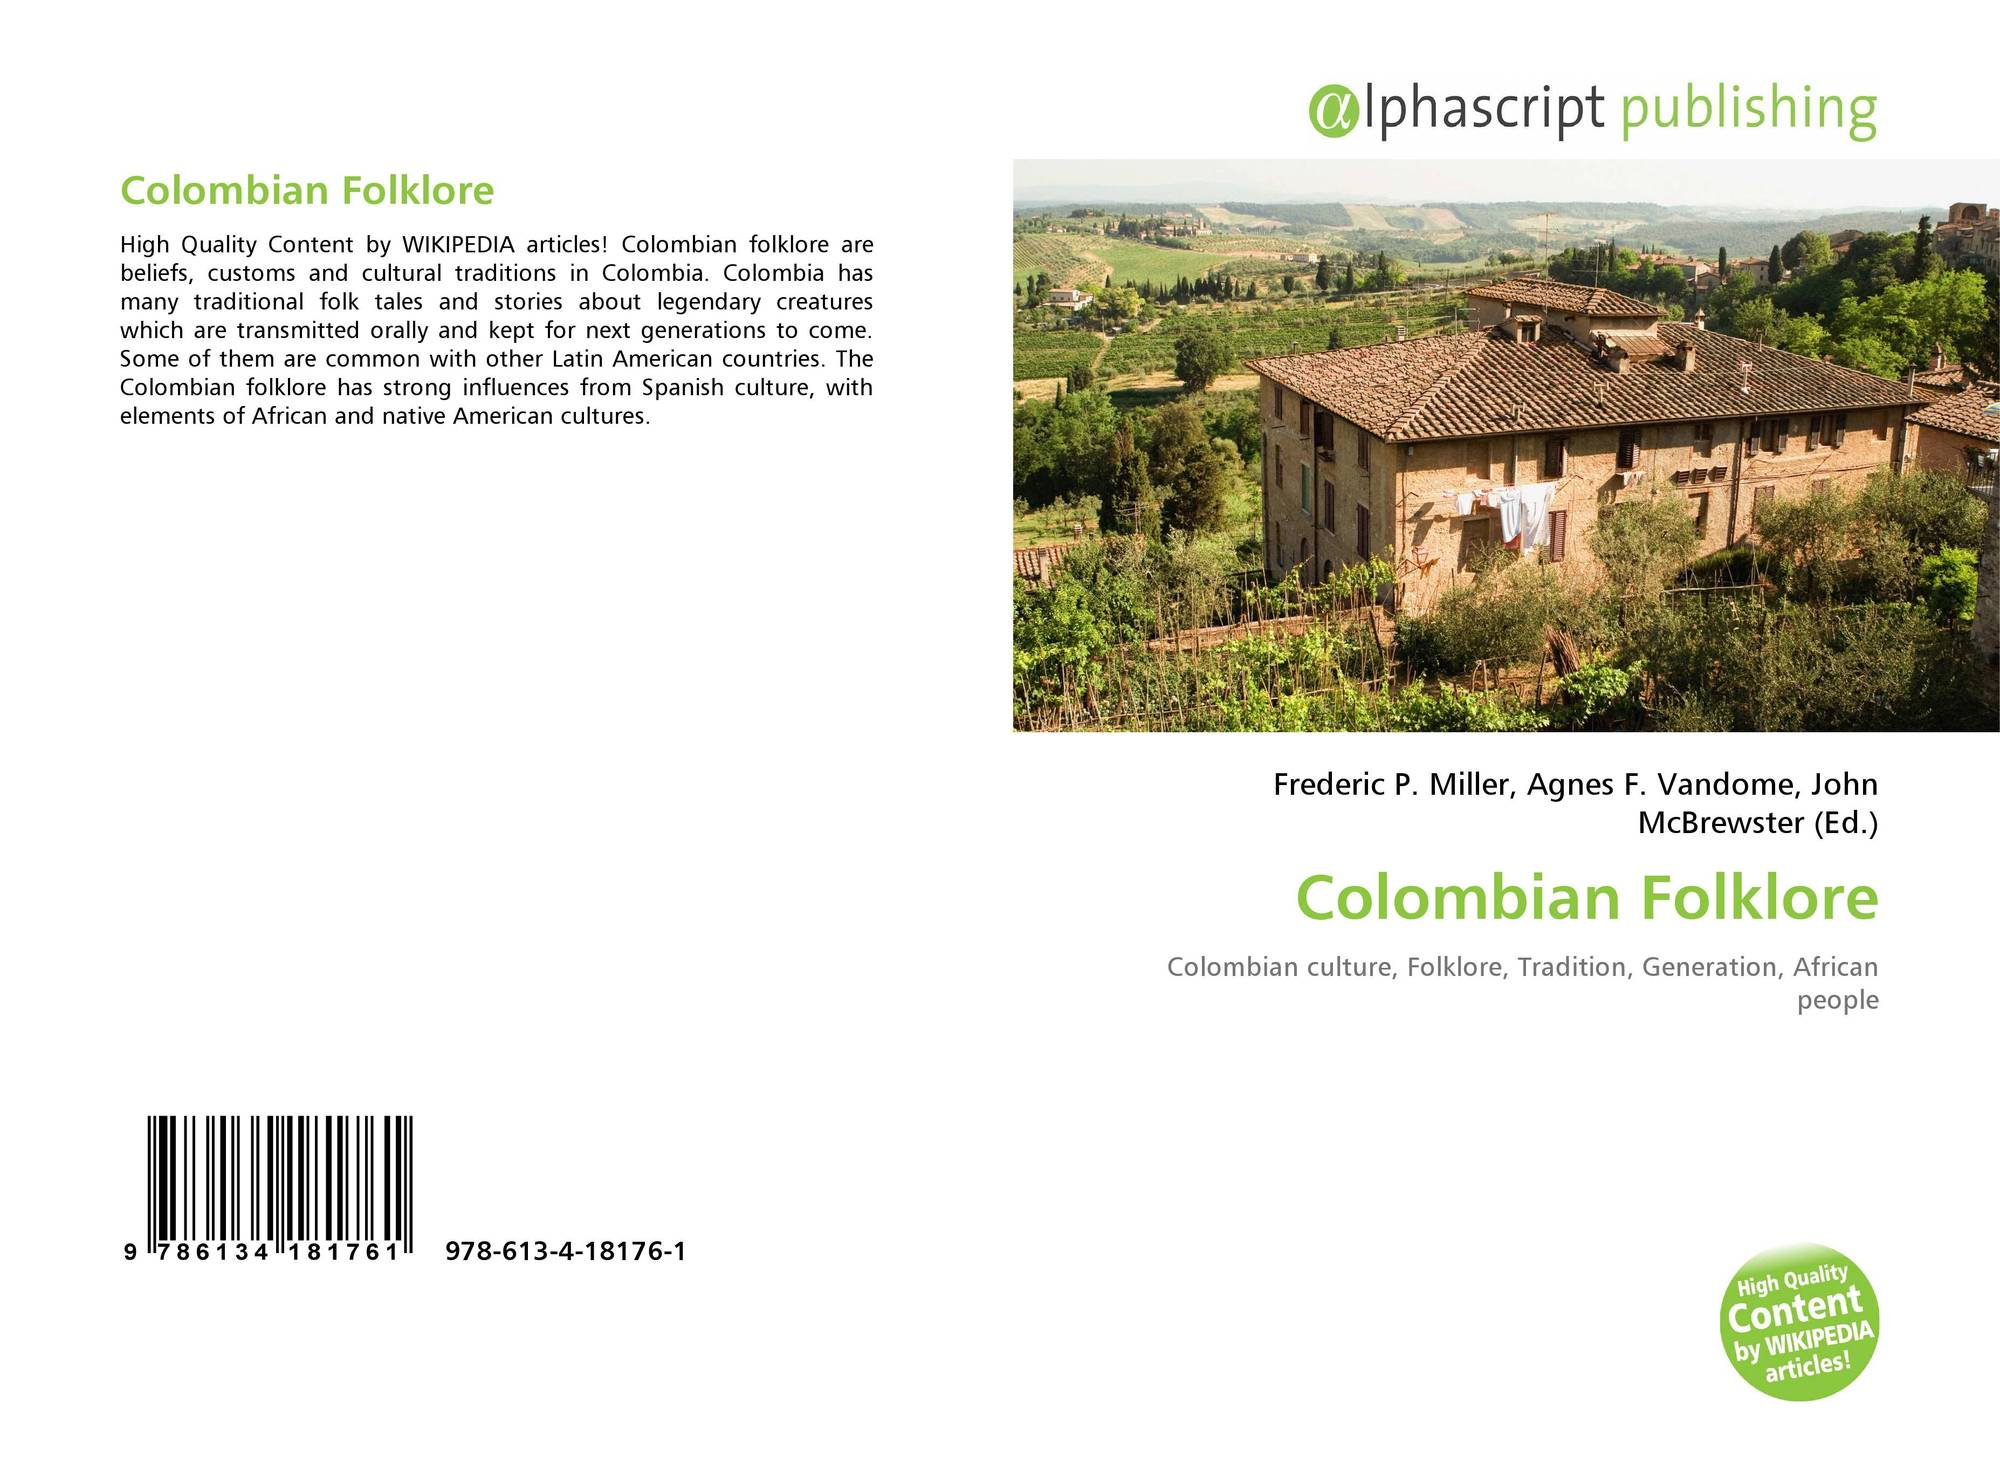 Colombian Folklore, 978-613-4-18176-1, 6134181765 ,9786134181761